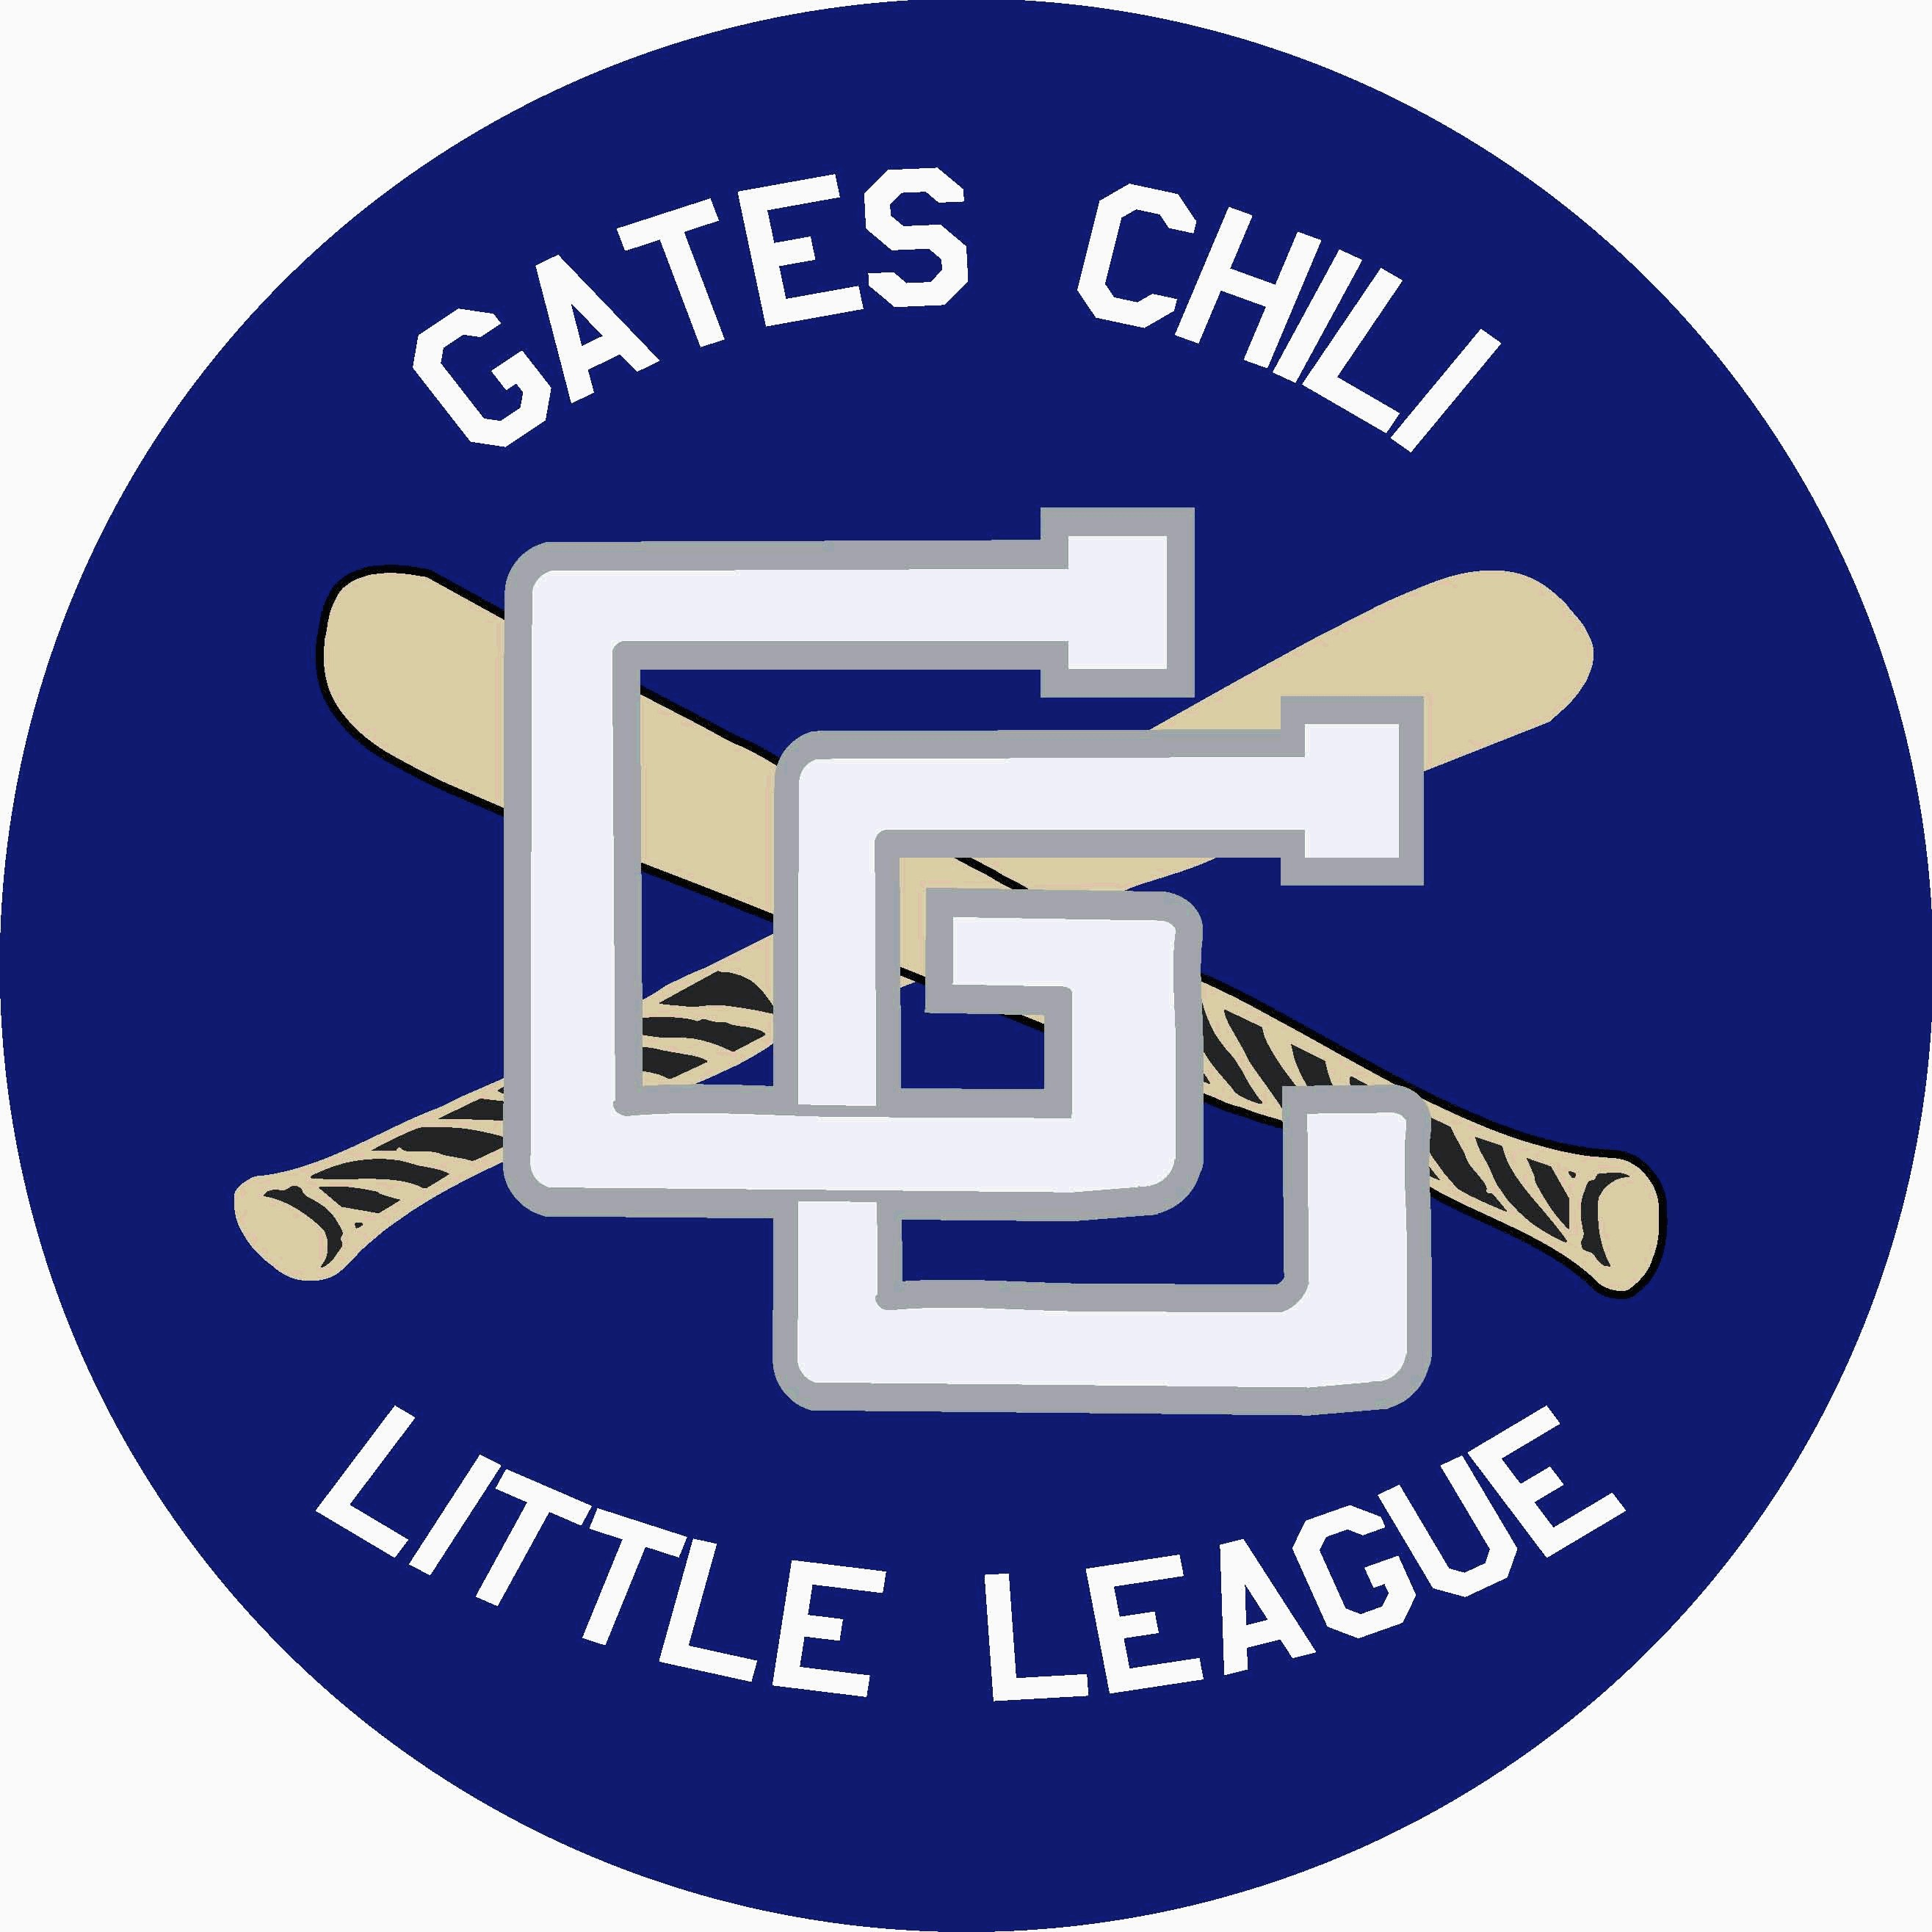 Gates Chili Little League Inc